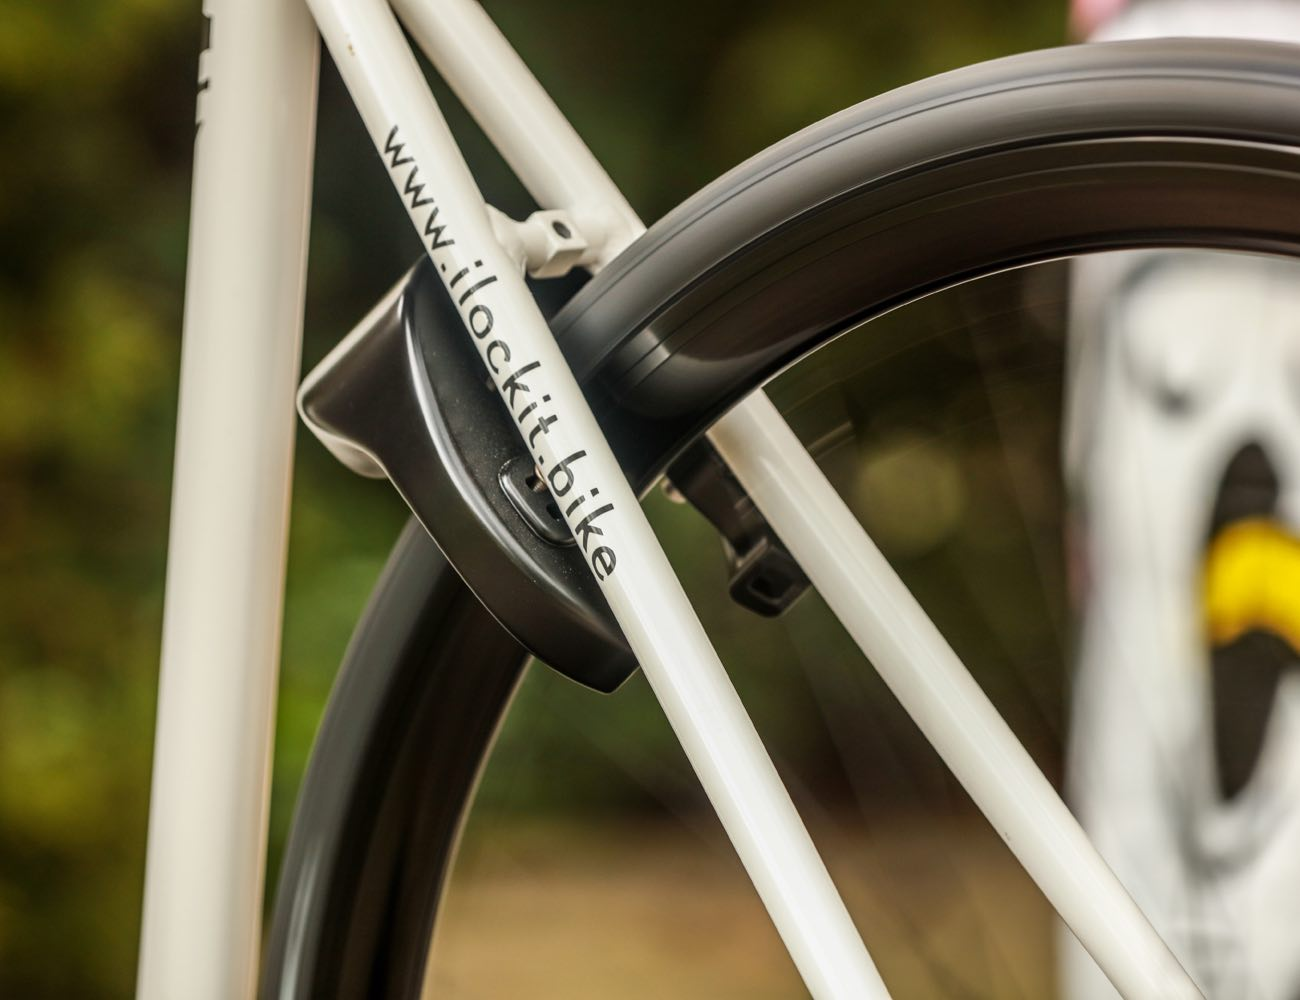 I LOCK IT – Automatic Bike Lock